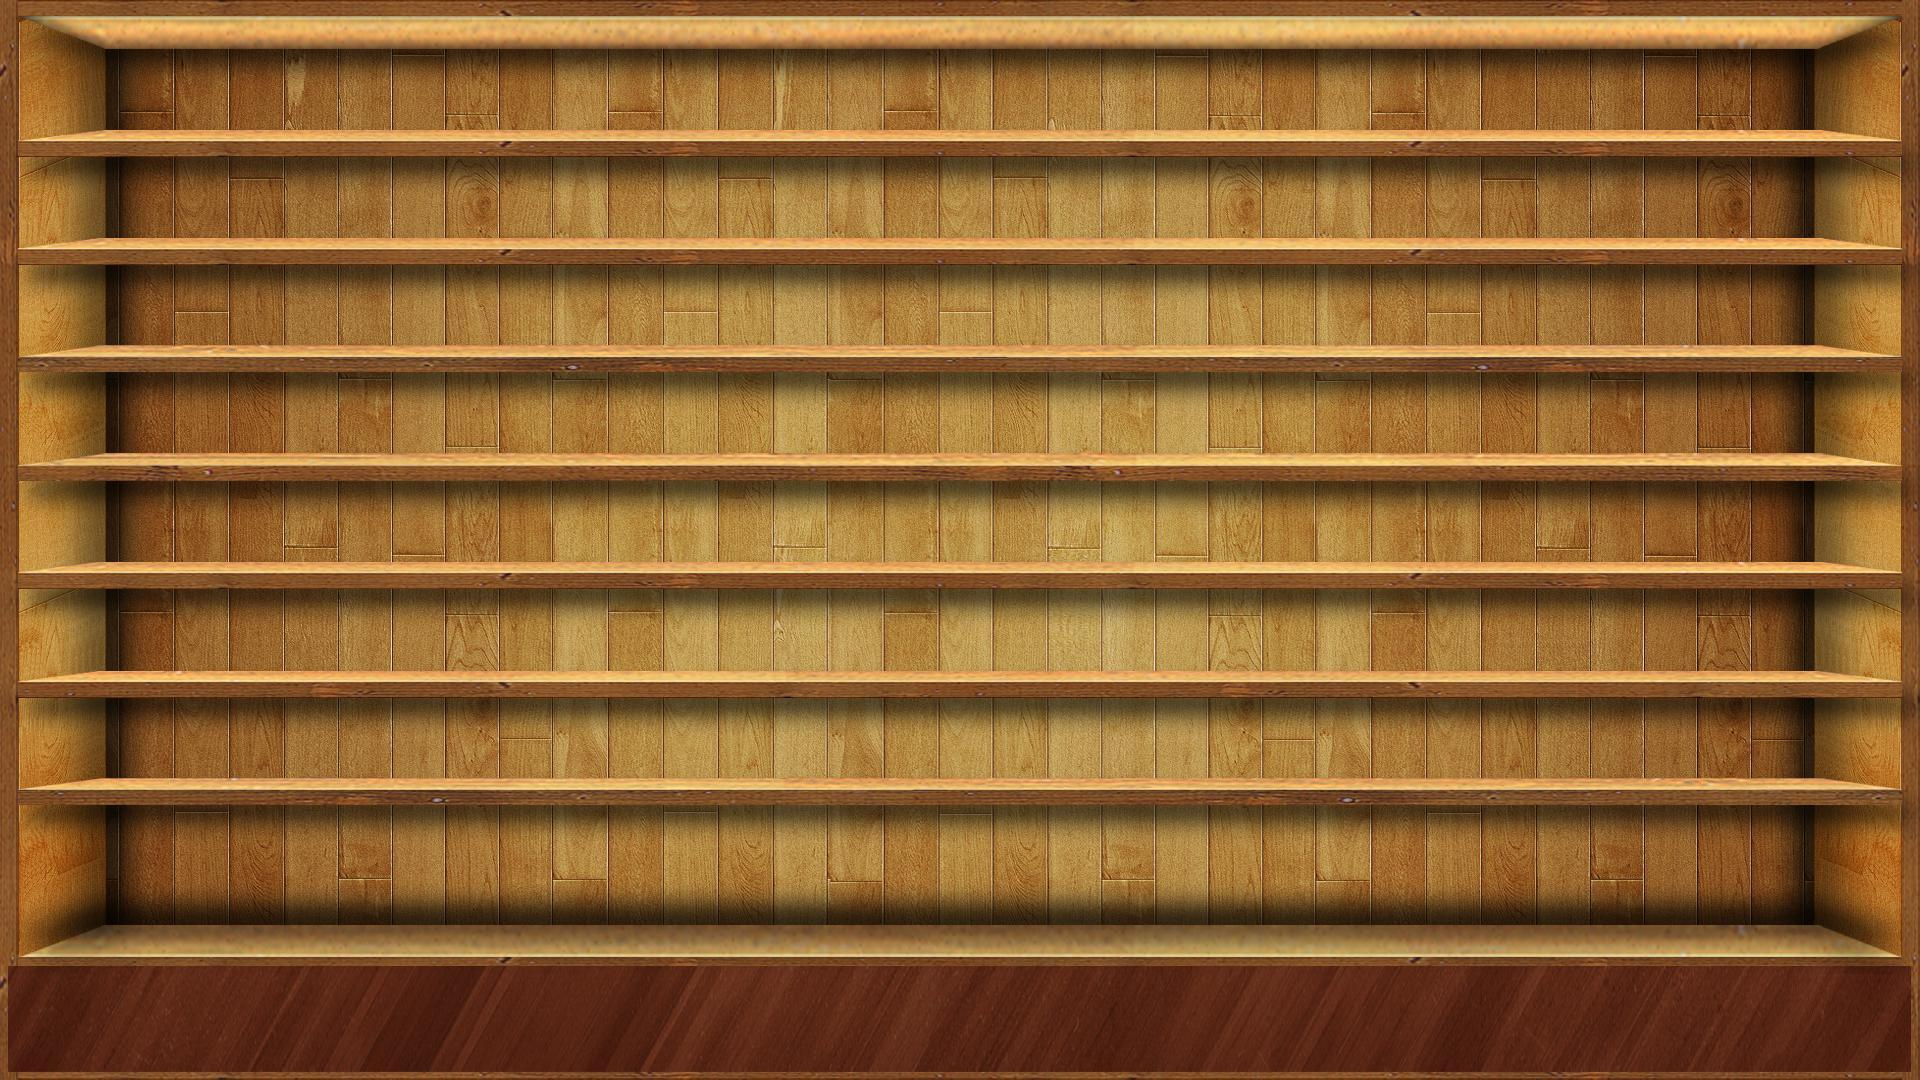 wood shelves hd wallpaper 1456 wallpaper computer best website